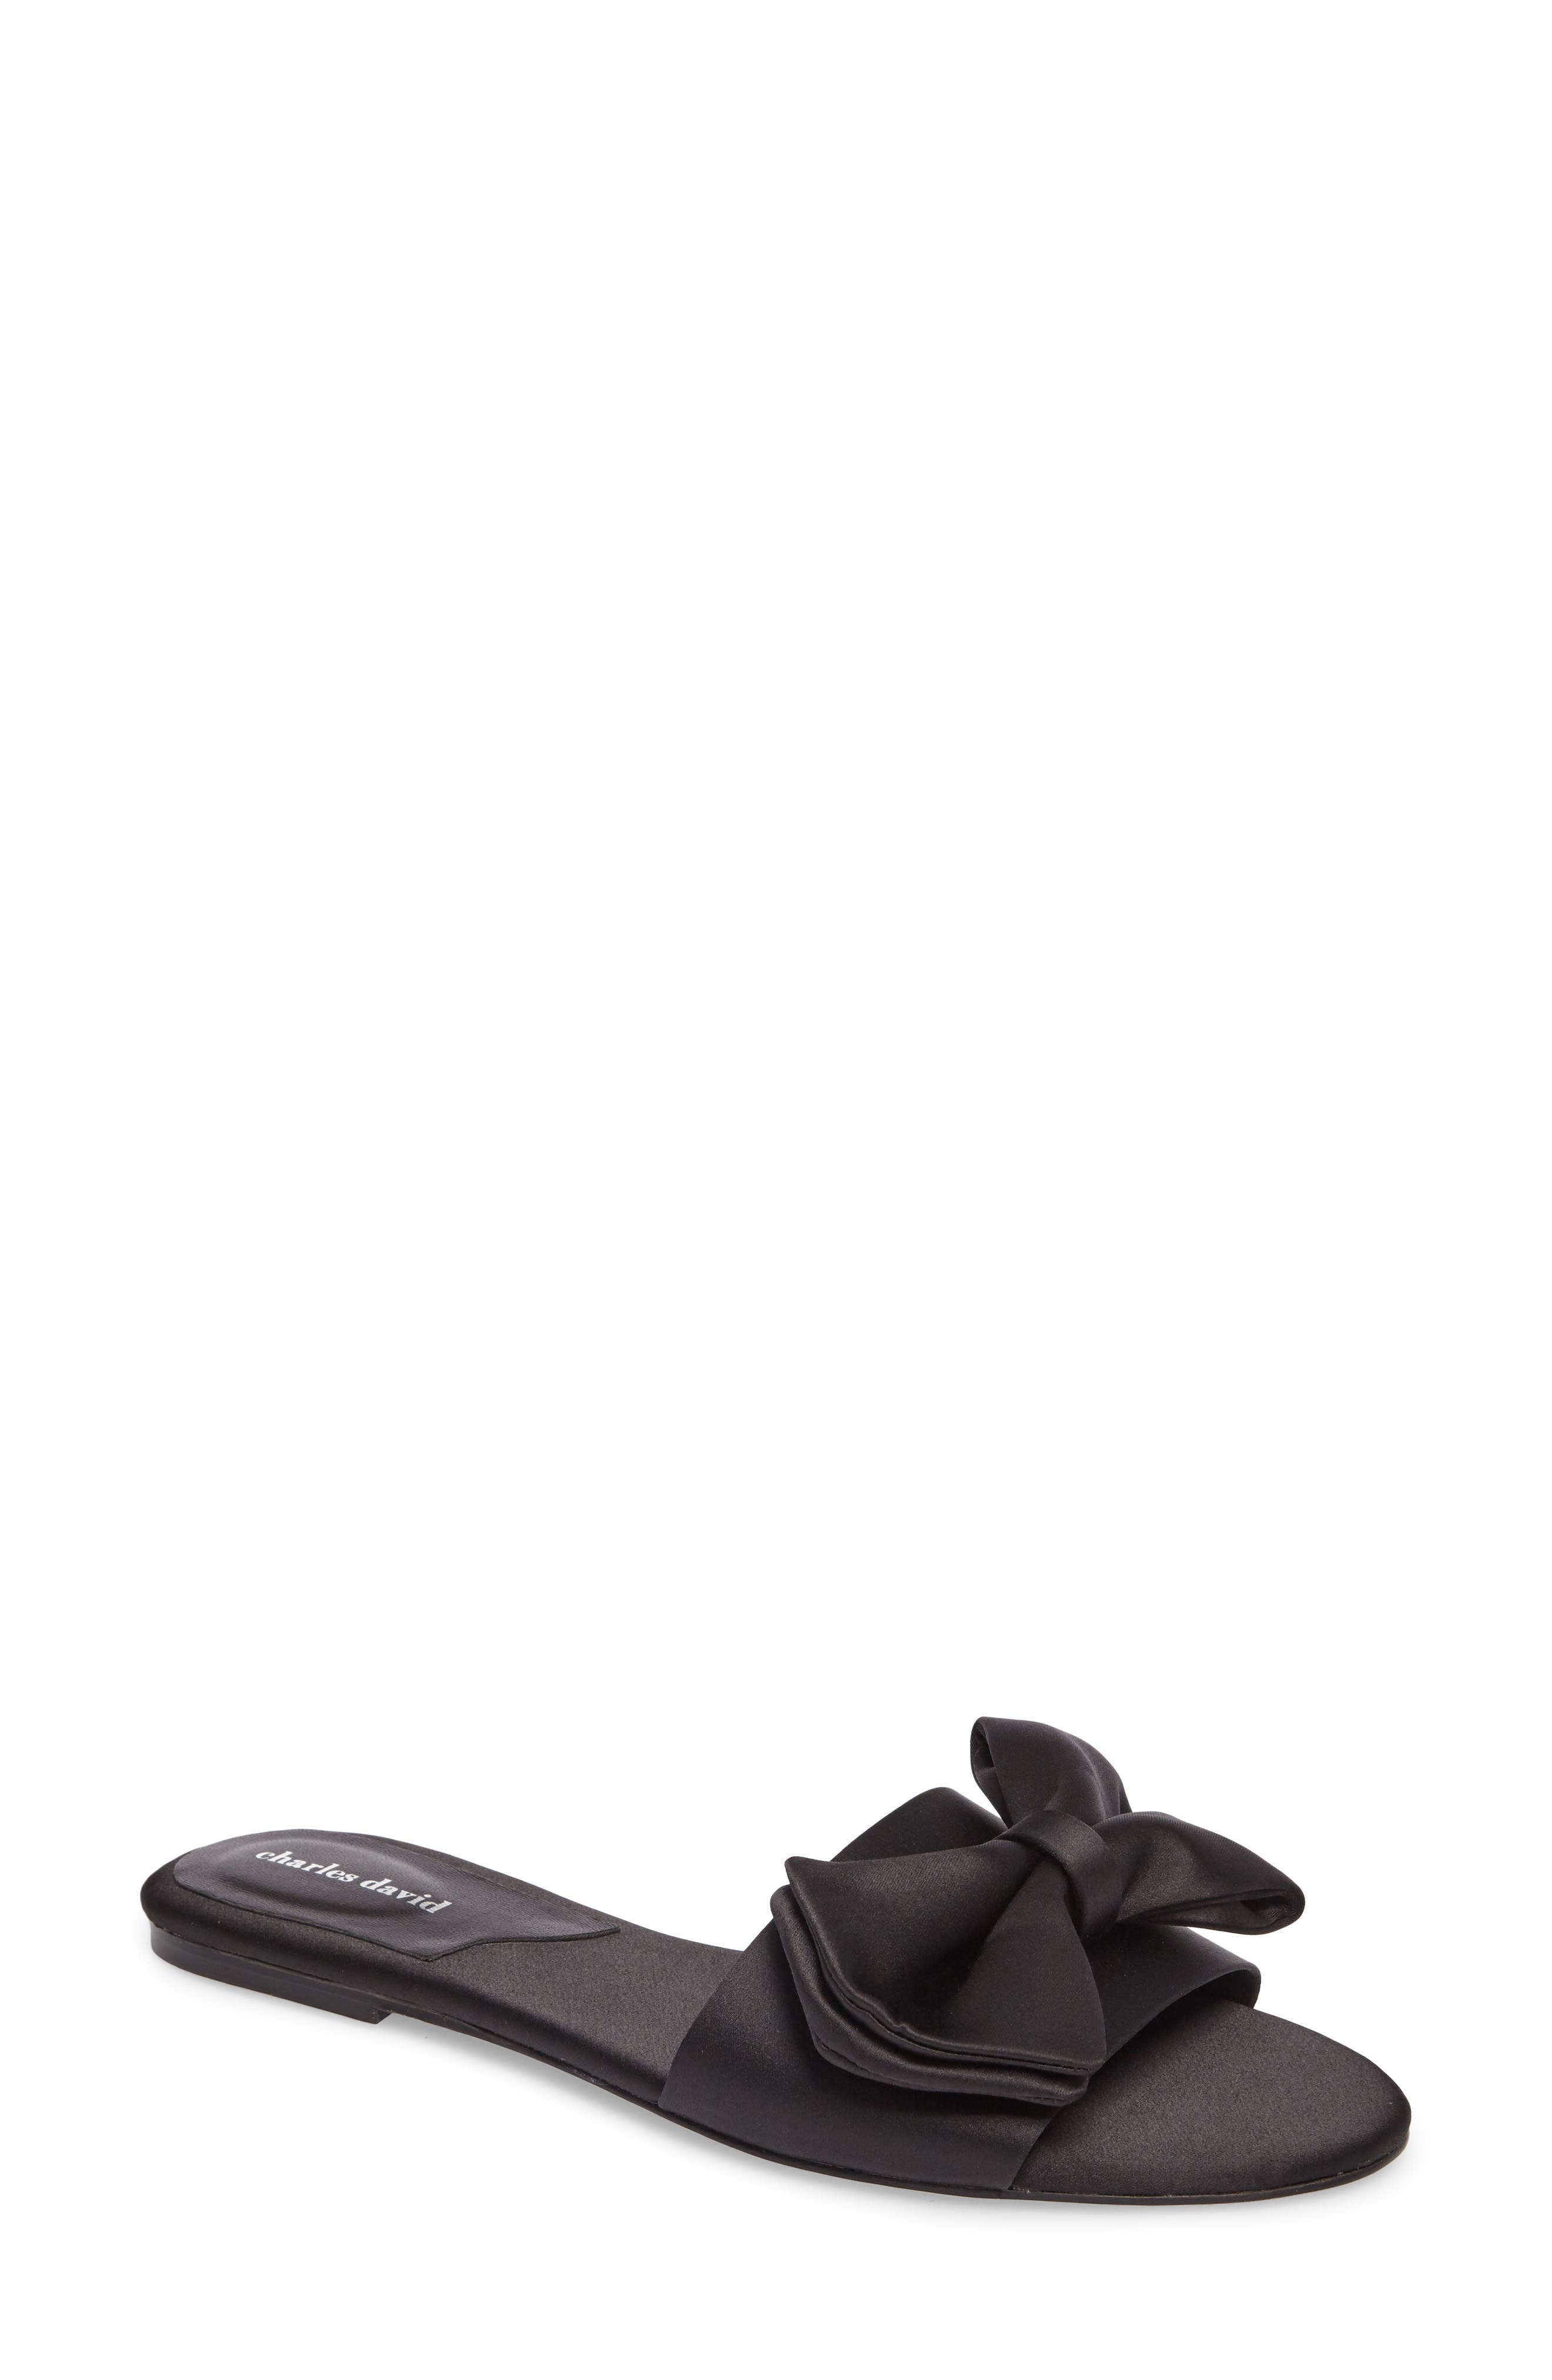 Bow Slide Sandal,                             Main thumbnail 1, color,                             002